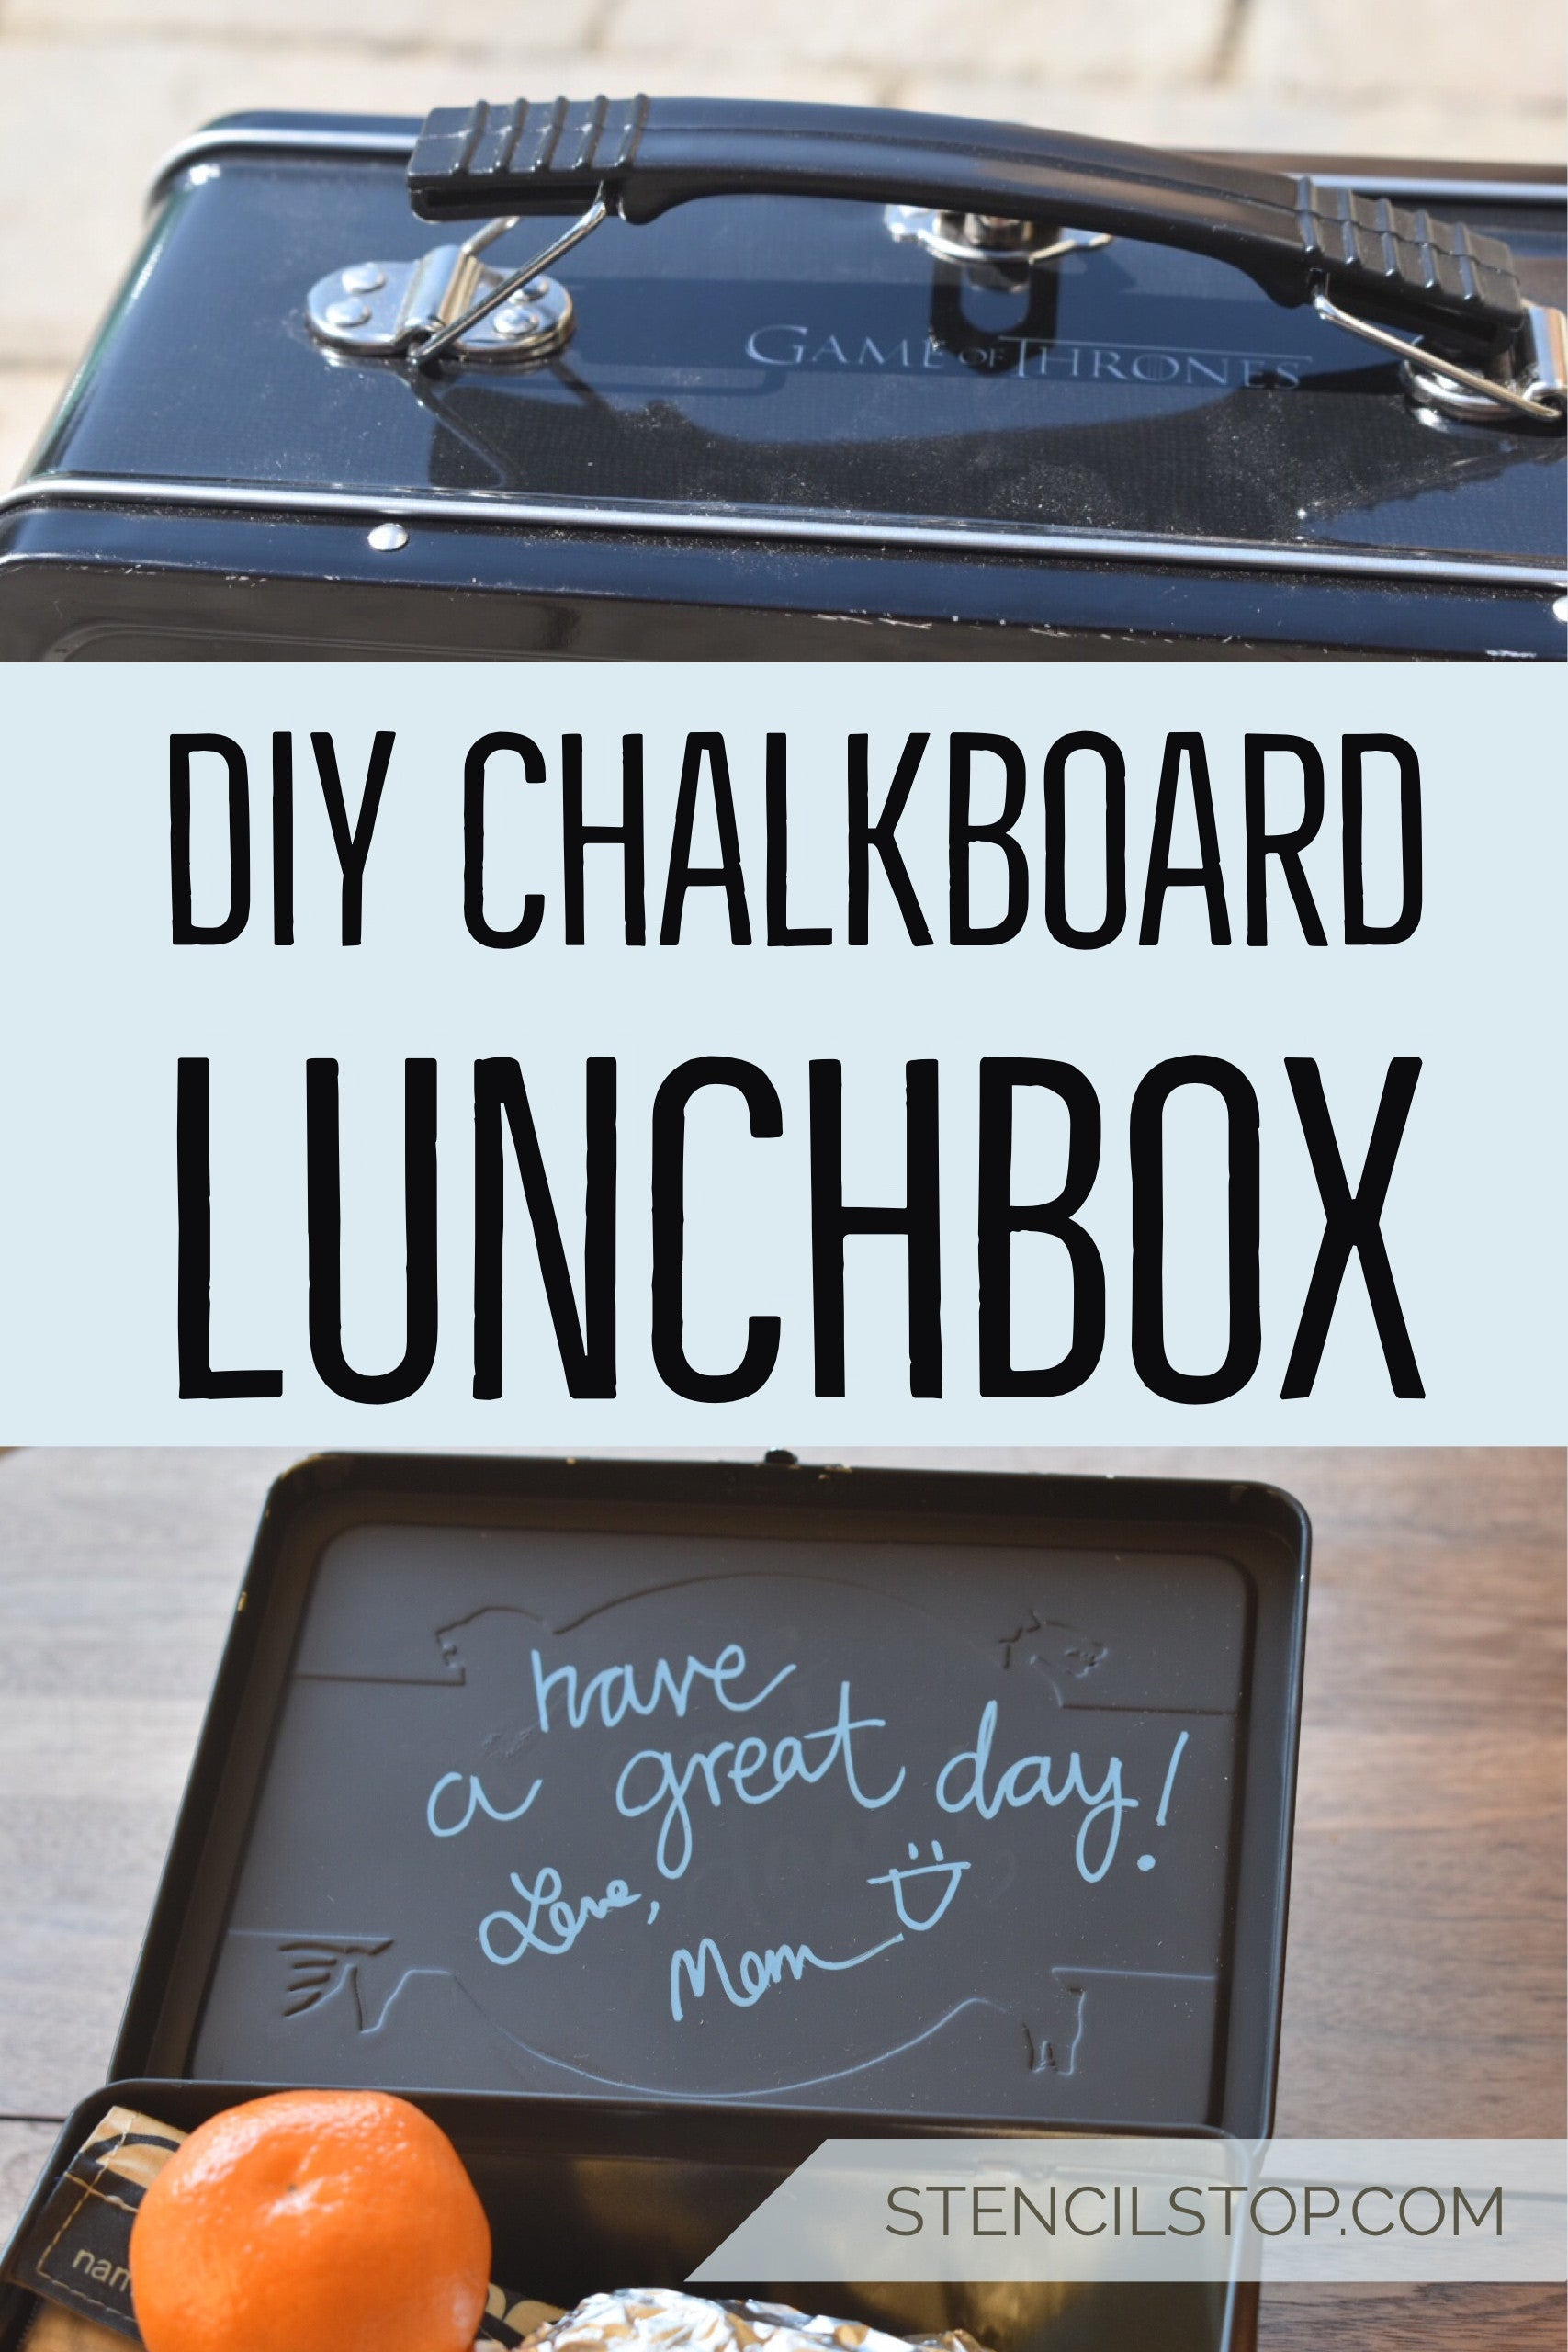 Stencil Stop - Pinterest DIY Chalkboard Lunchbox Project